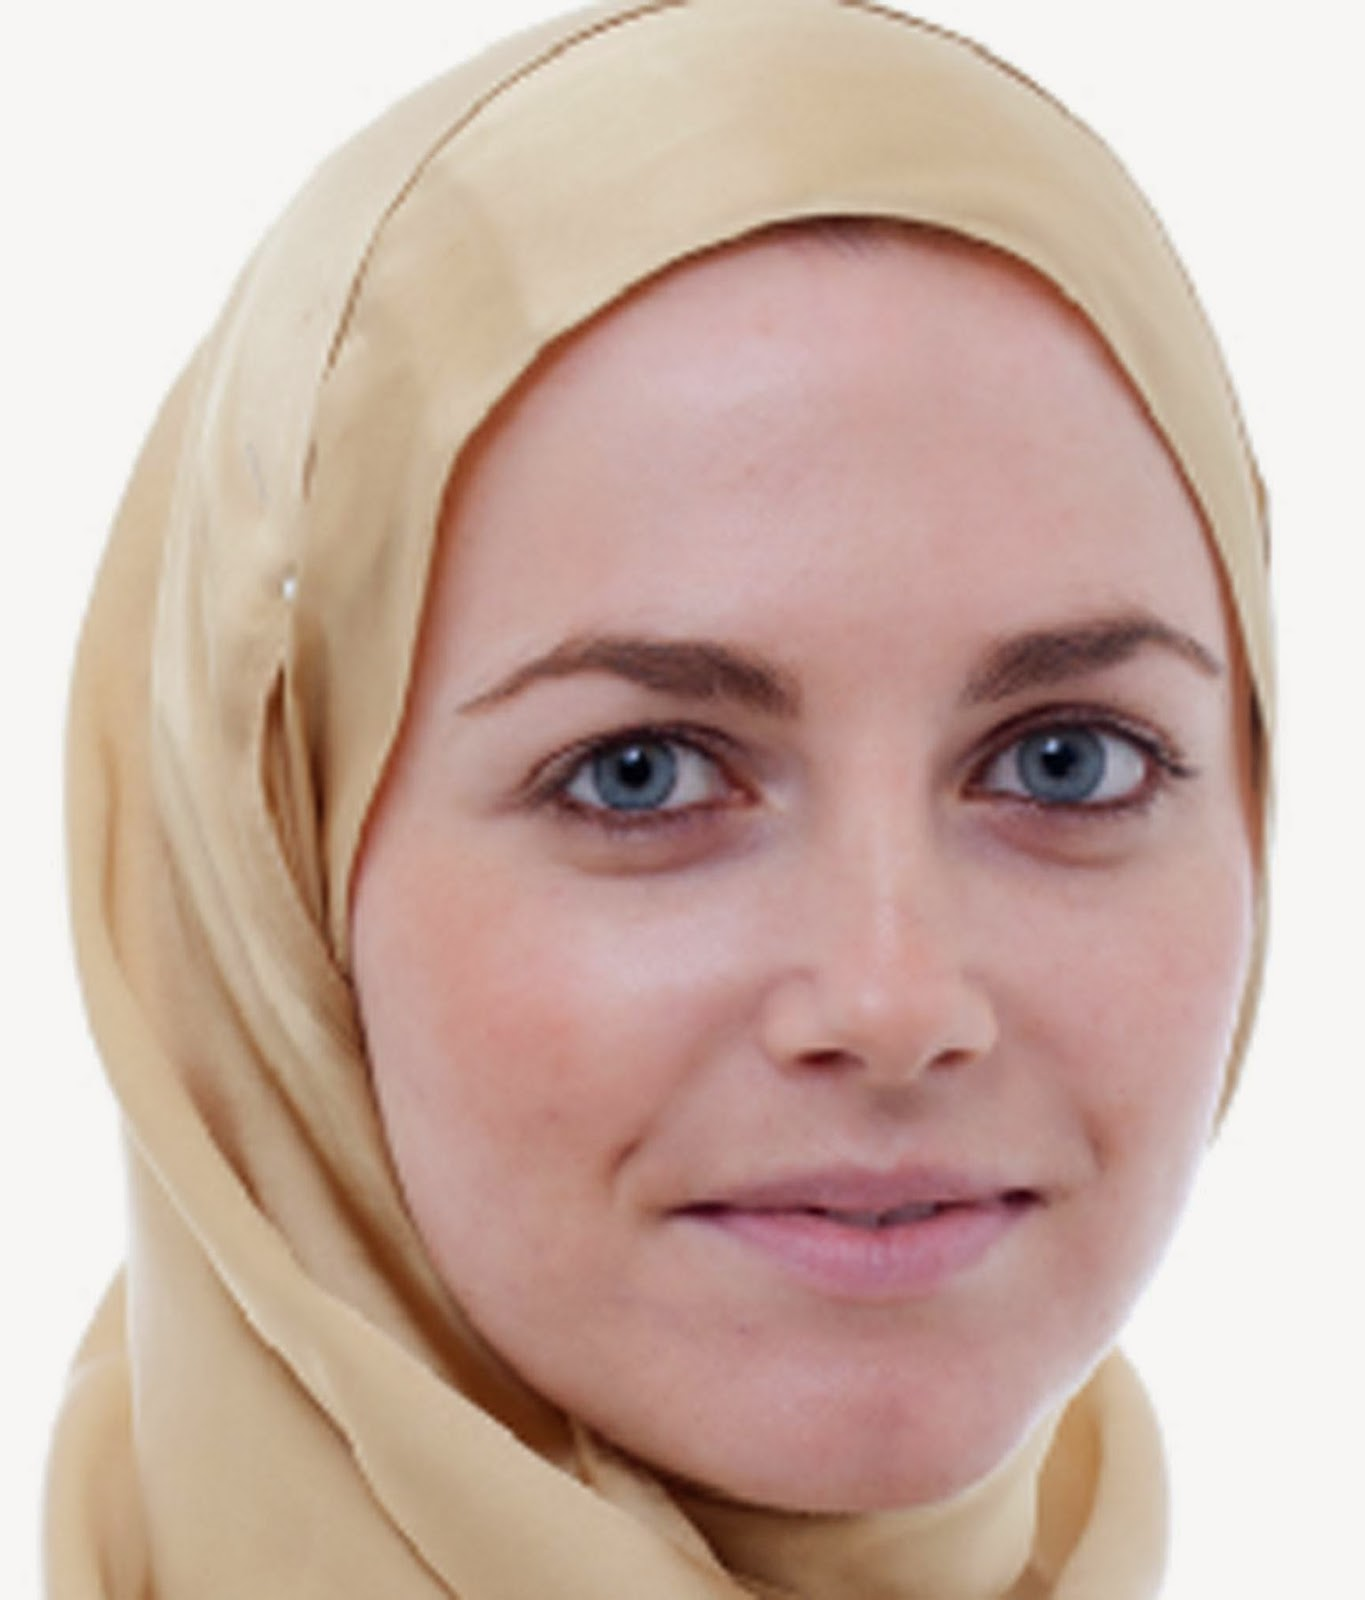 wagoner single muslim girls An open letter to all the single asian/arab girls over the age of 25 farah kausar august 24, 2015, 12:25 pm  there is no magic formula on how to go about finding 'the one' but having.